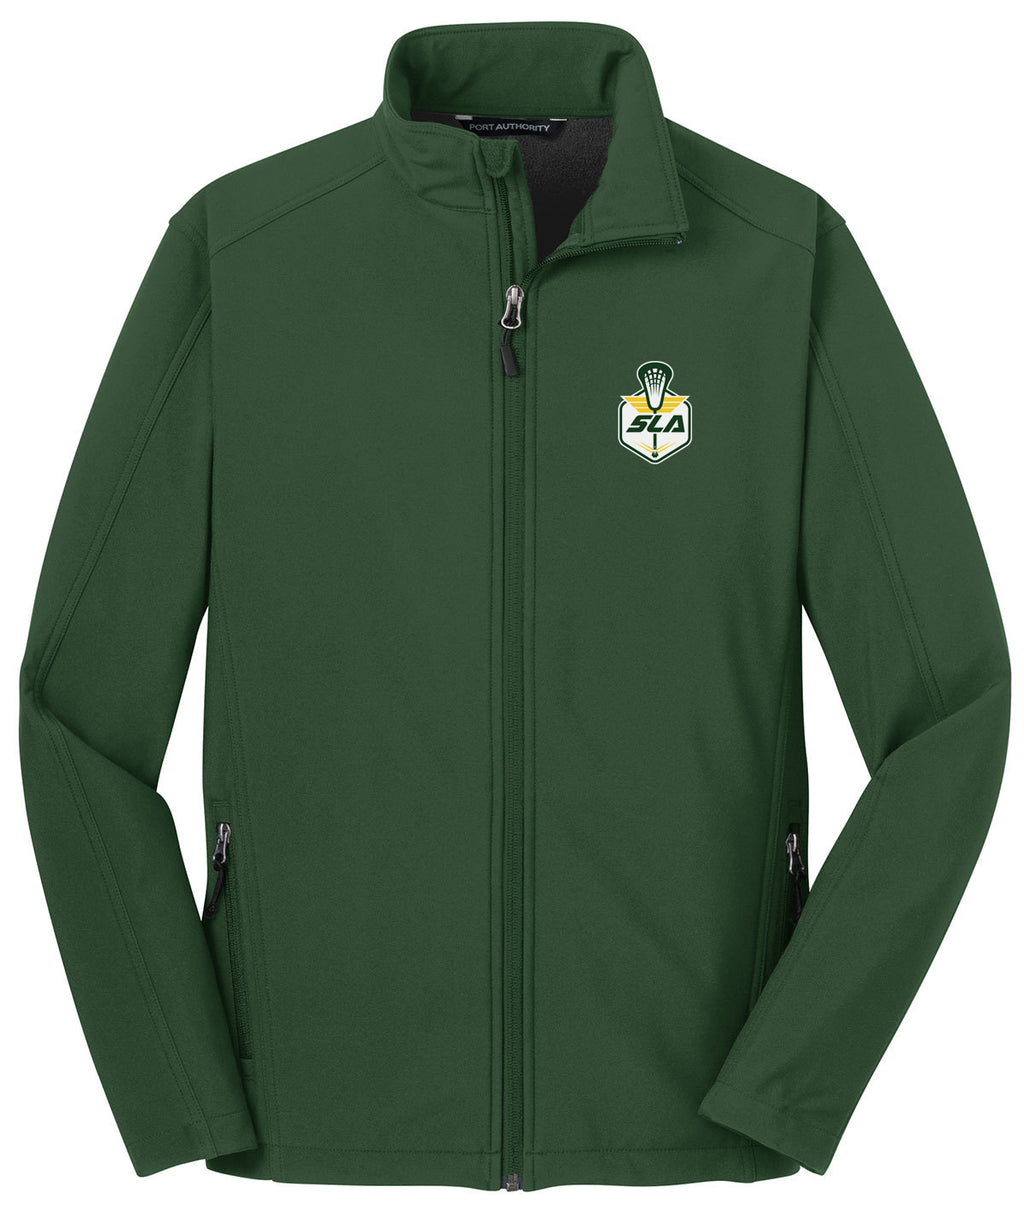 Sycamore Lacrosse Association Green Soft Shell Jacket